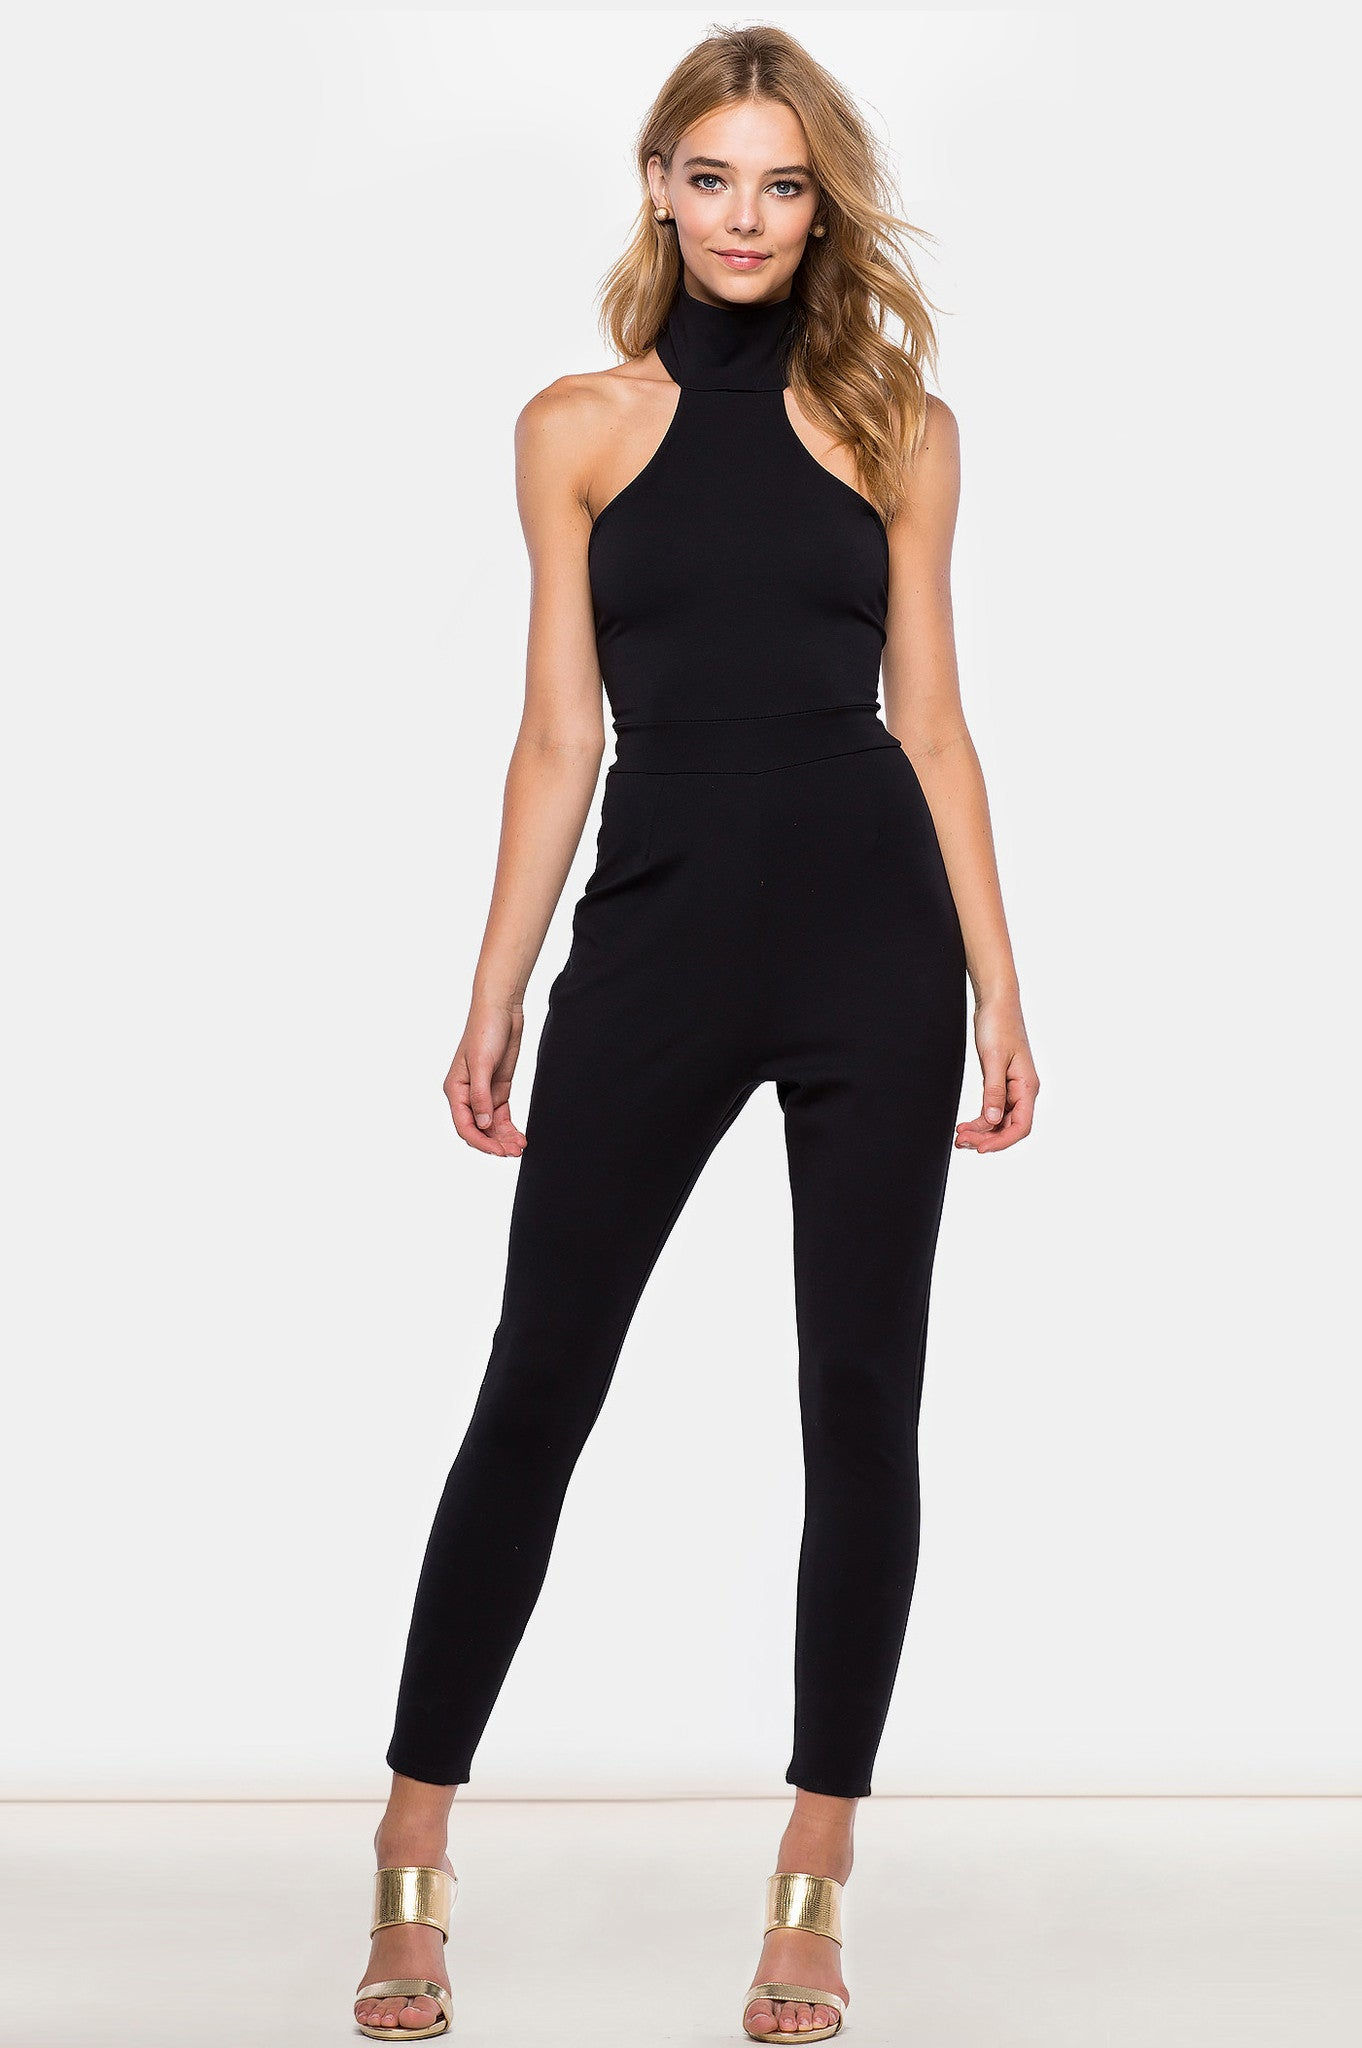 Sleeveless funnel neck turtleneck, open back tapered fitted skinny black jumpsuit, front view.